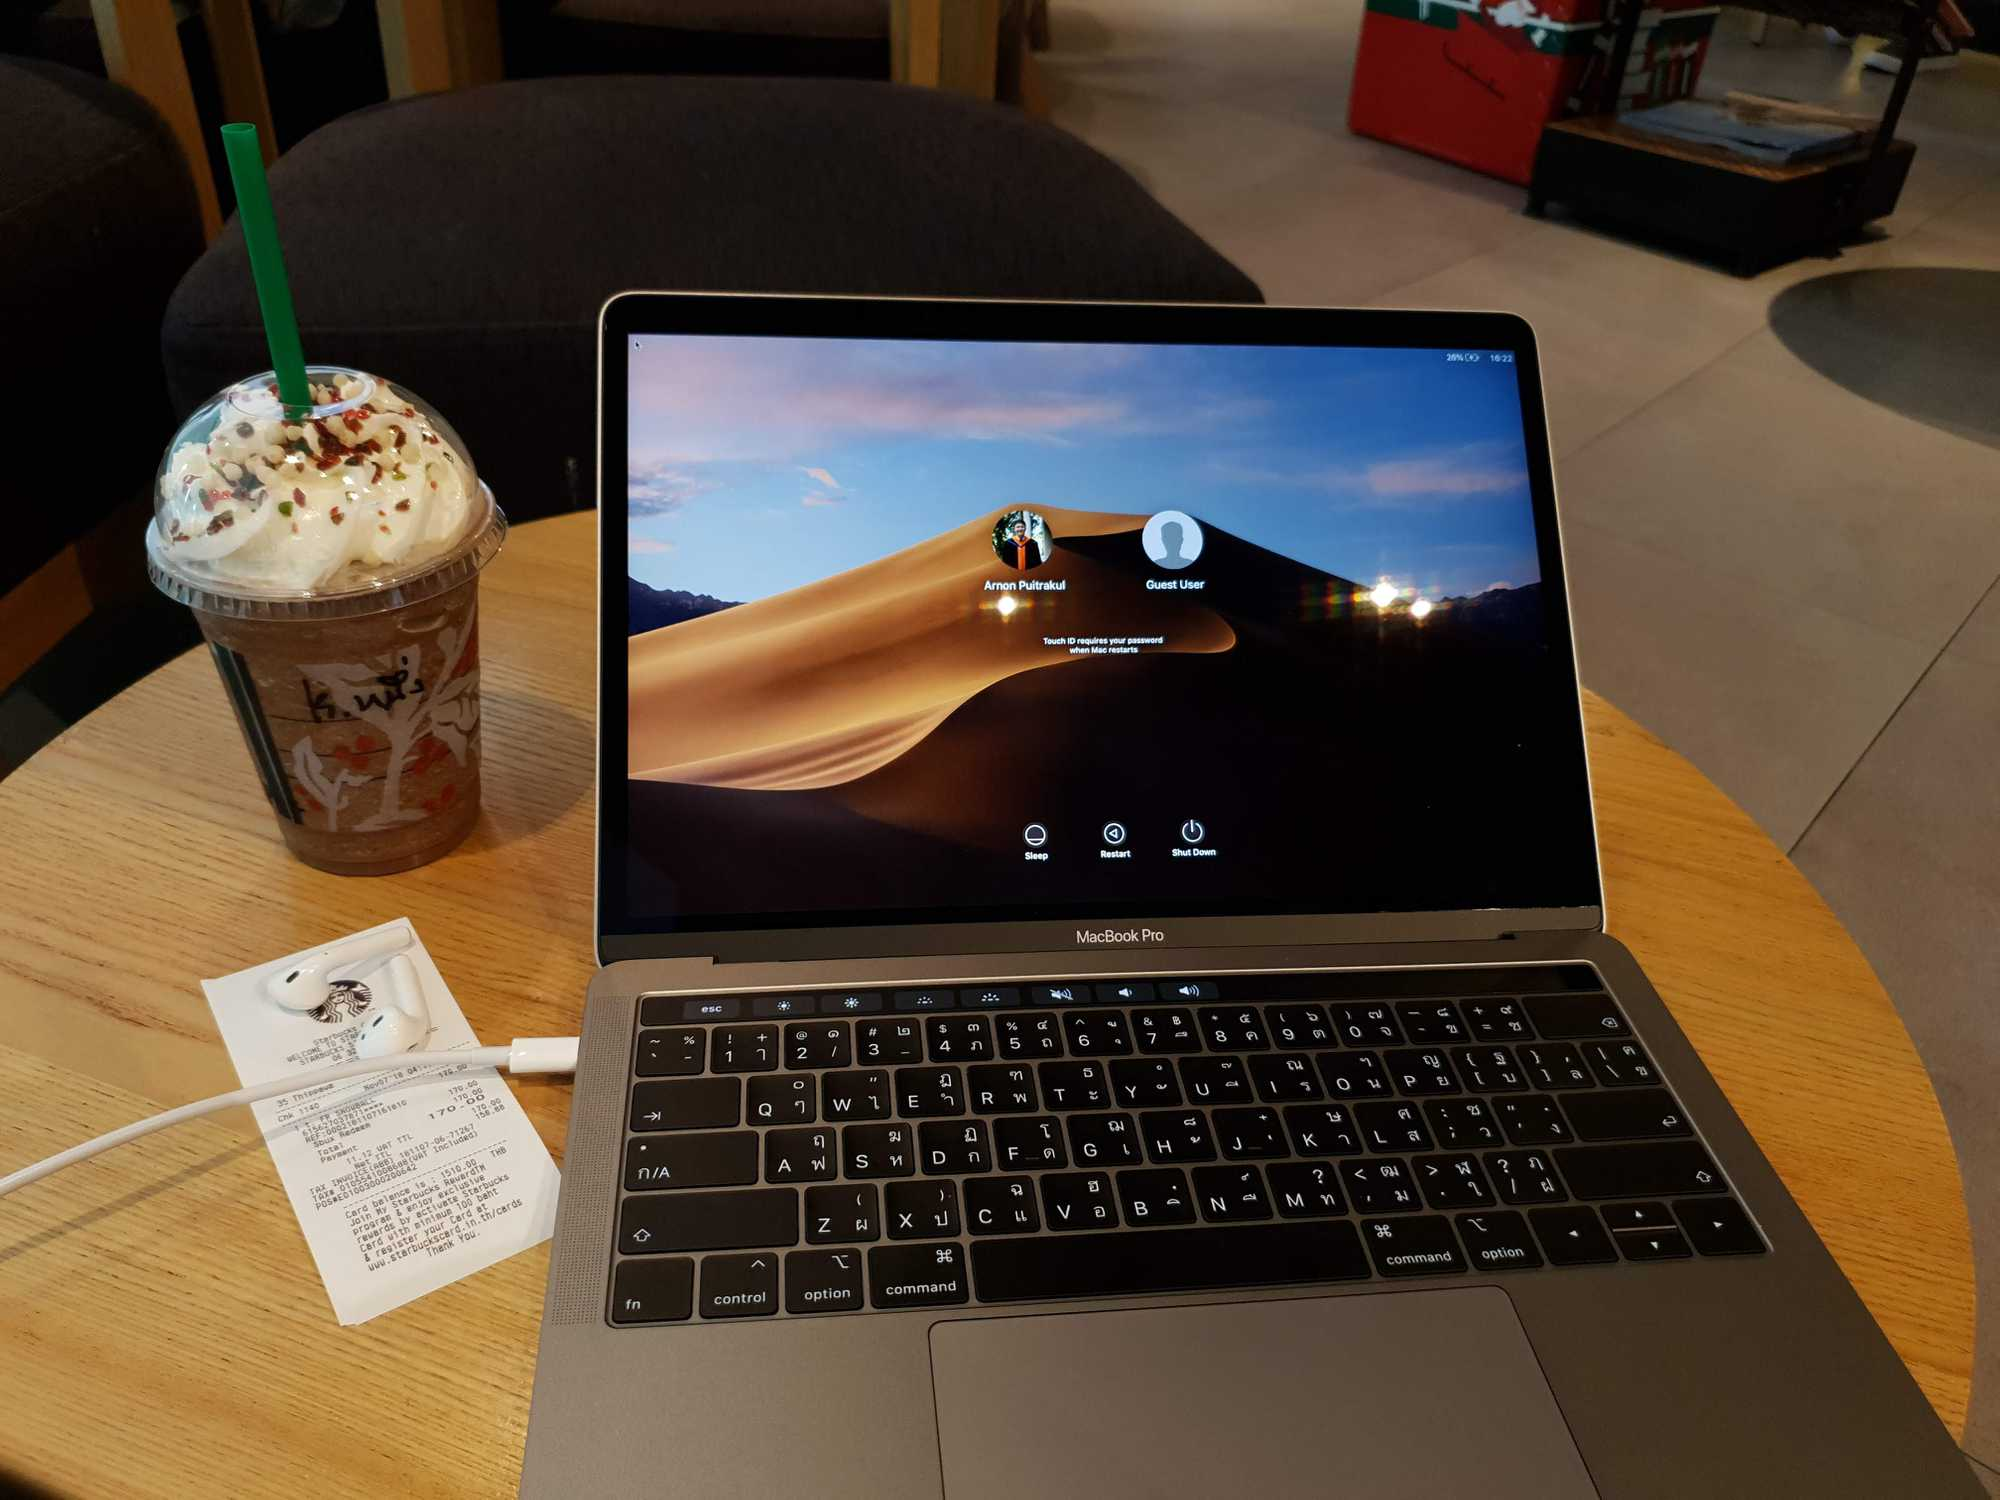 MacBook Pro 13-inch 2018 with Starbucks